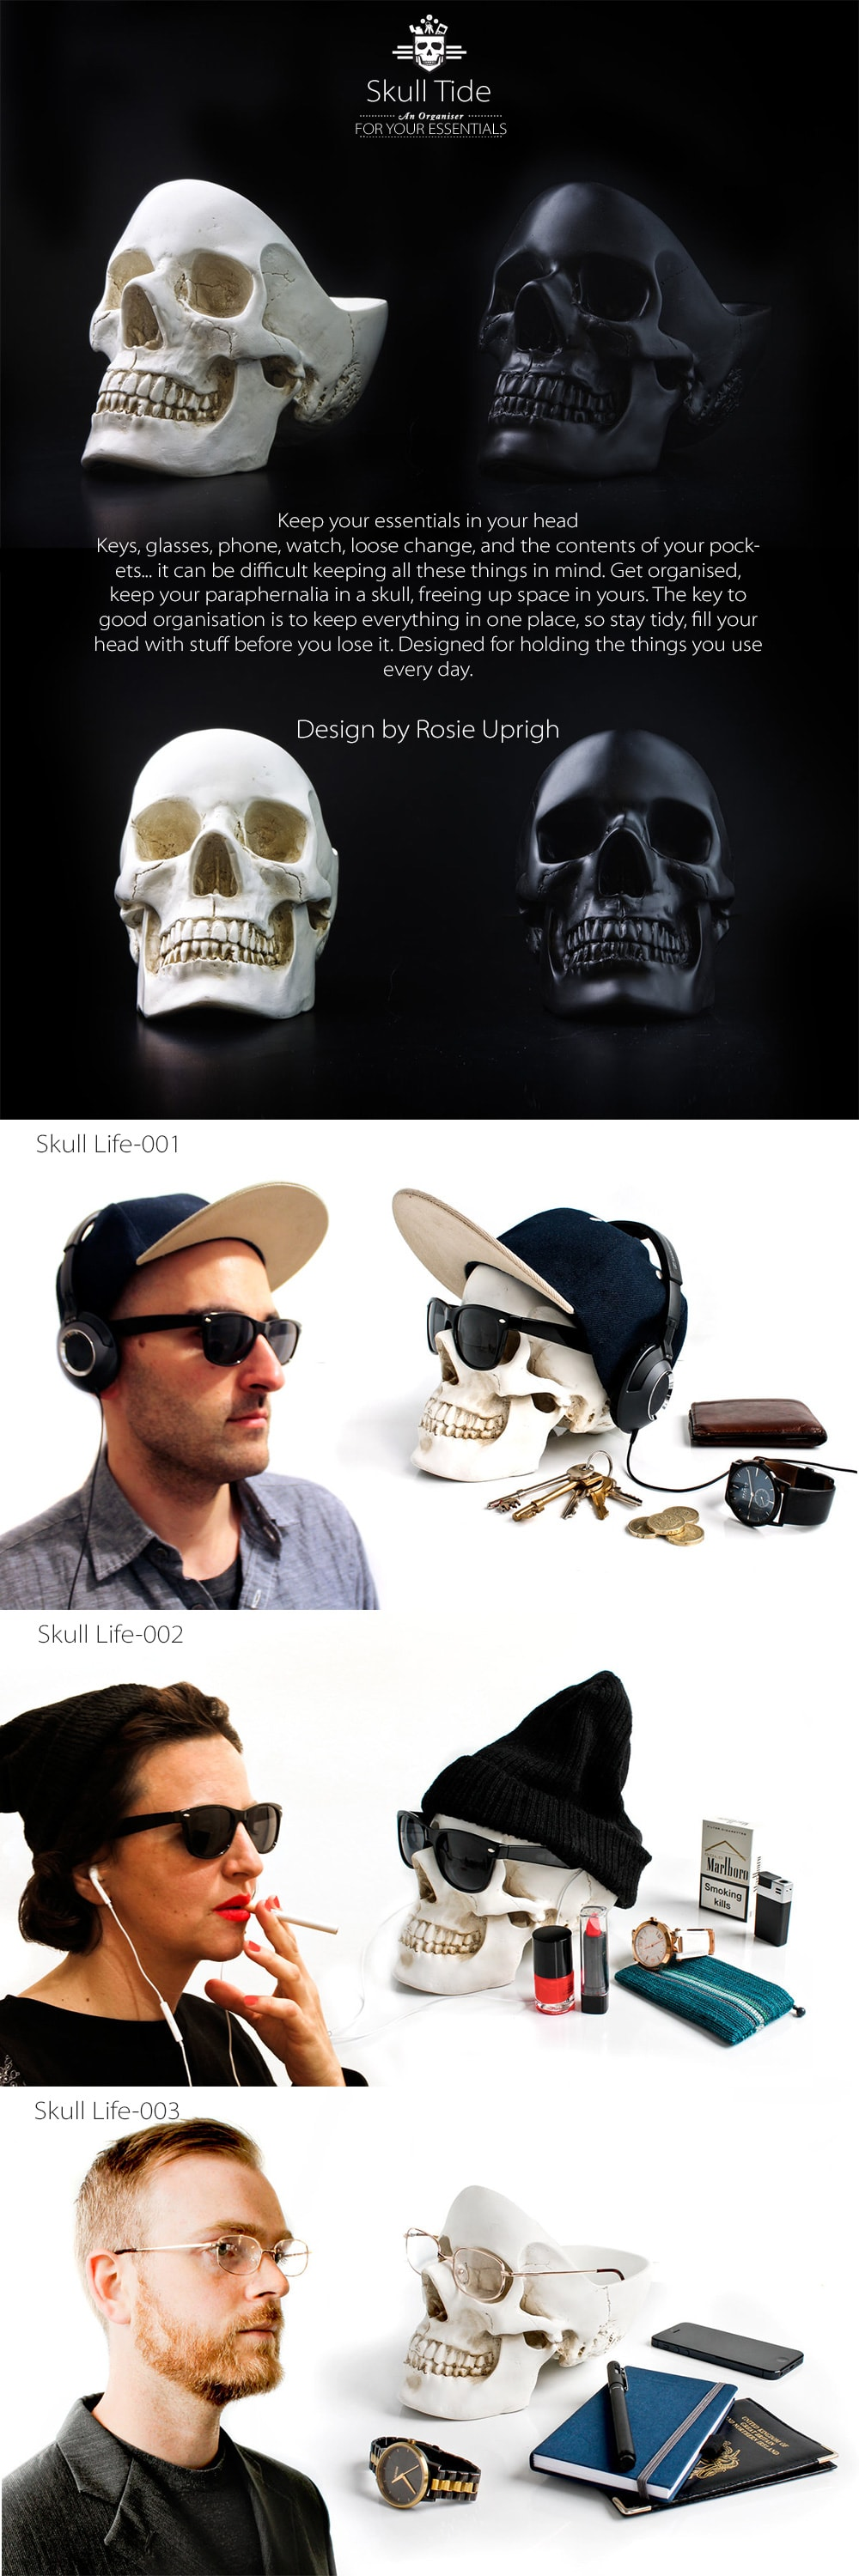 Skull Tidy Keep Your Essentials In Your Head